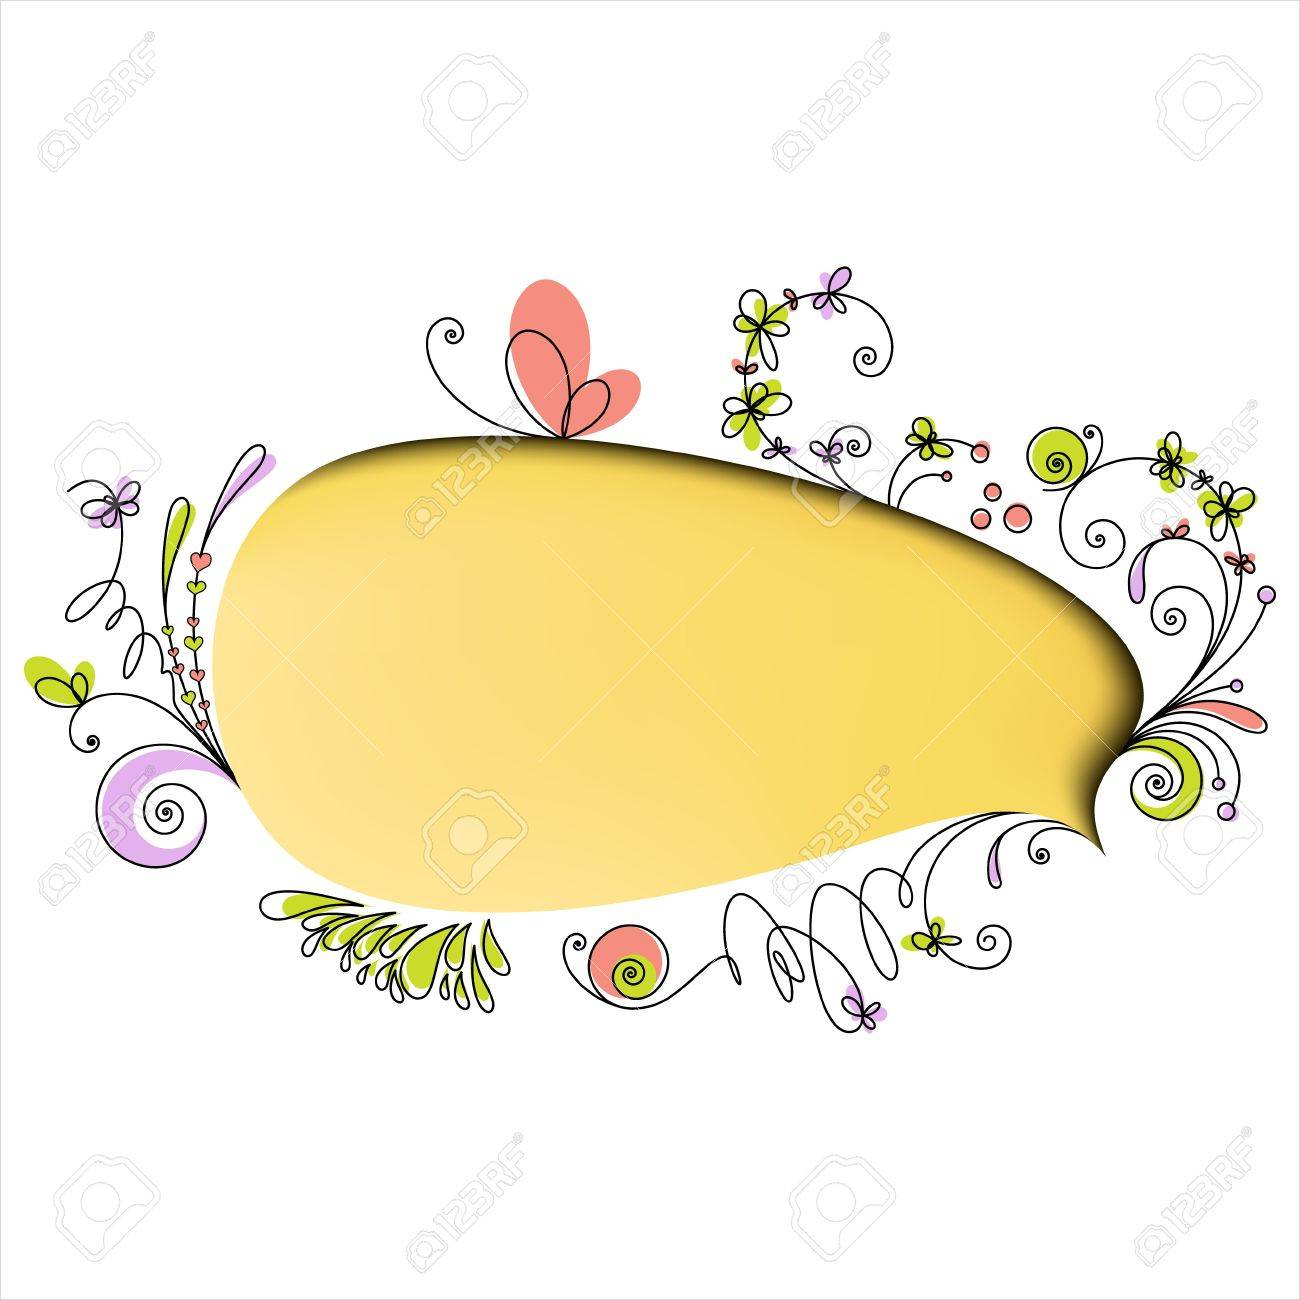 Yellow speech bubble with floral elements on white background Stock Vector - 12995985